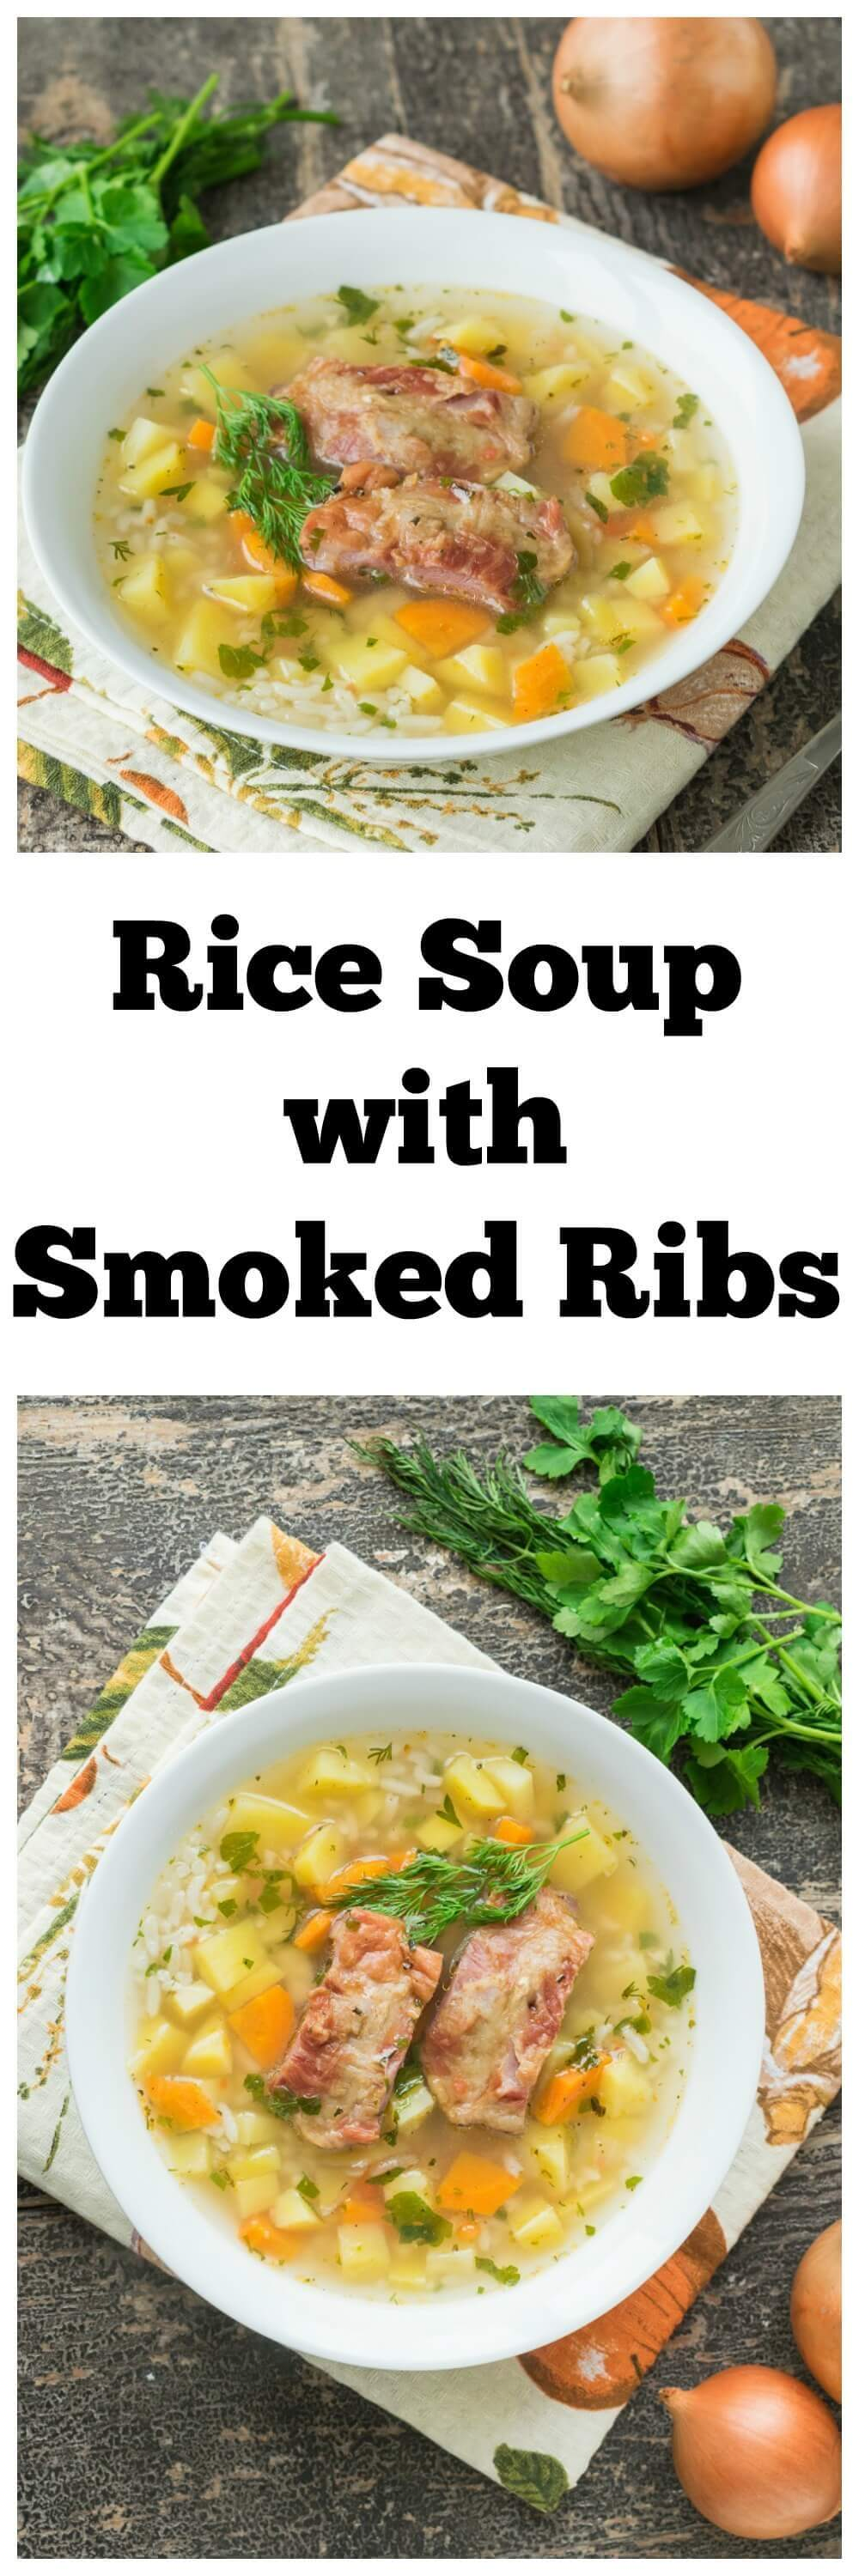 Rice Soup with Smoked Ribs